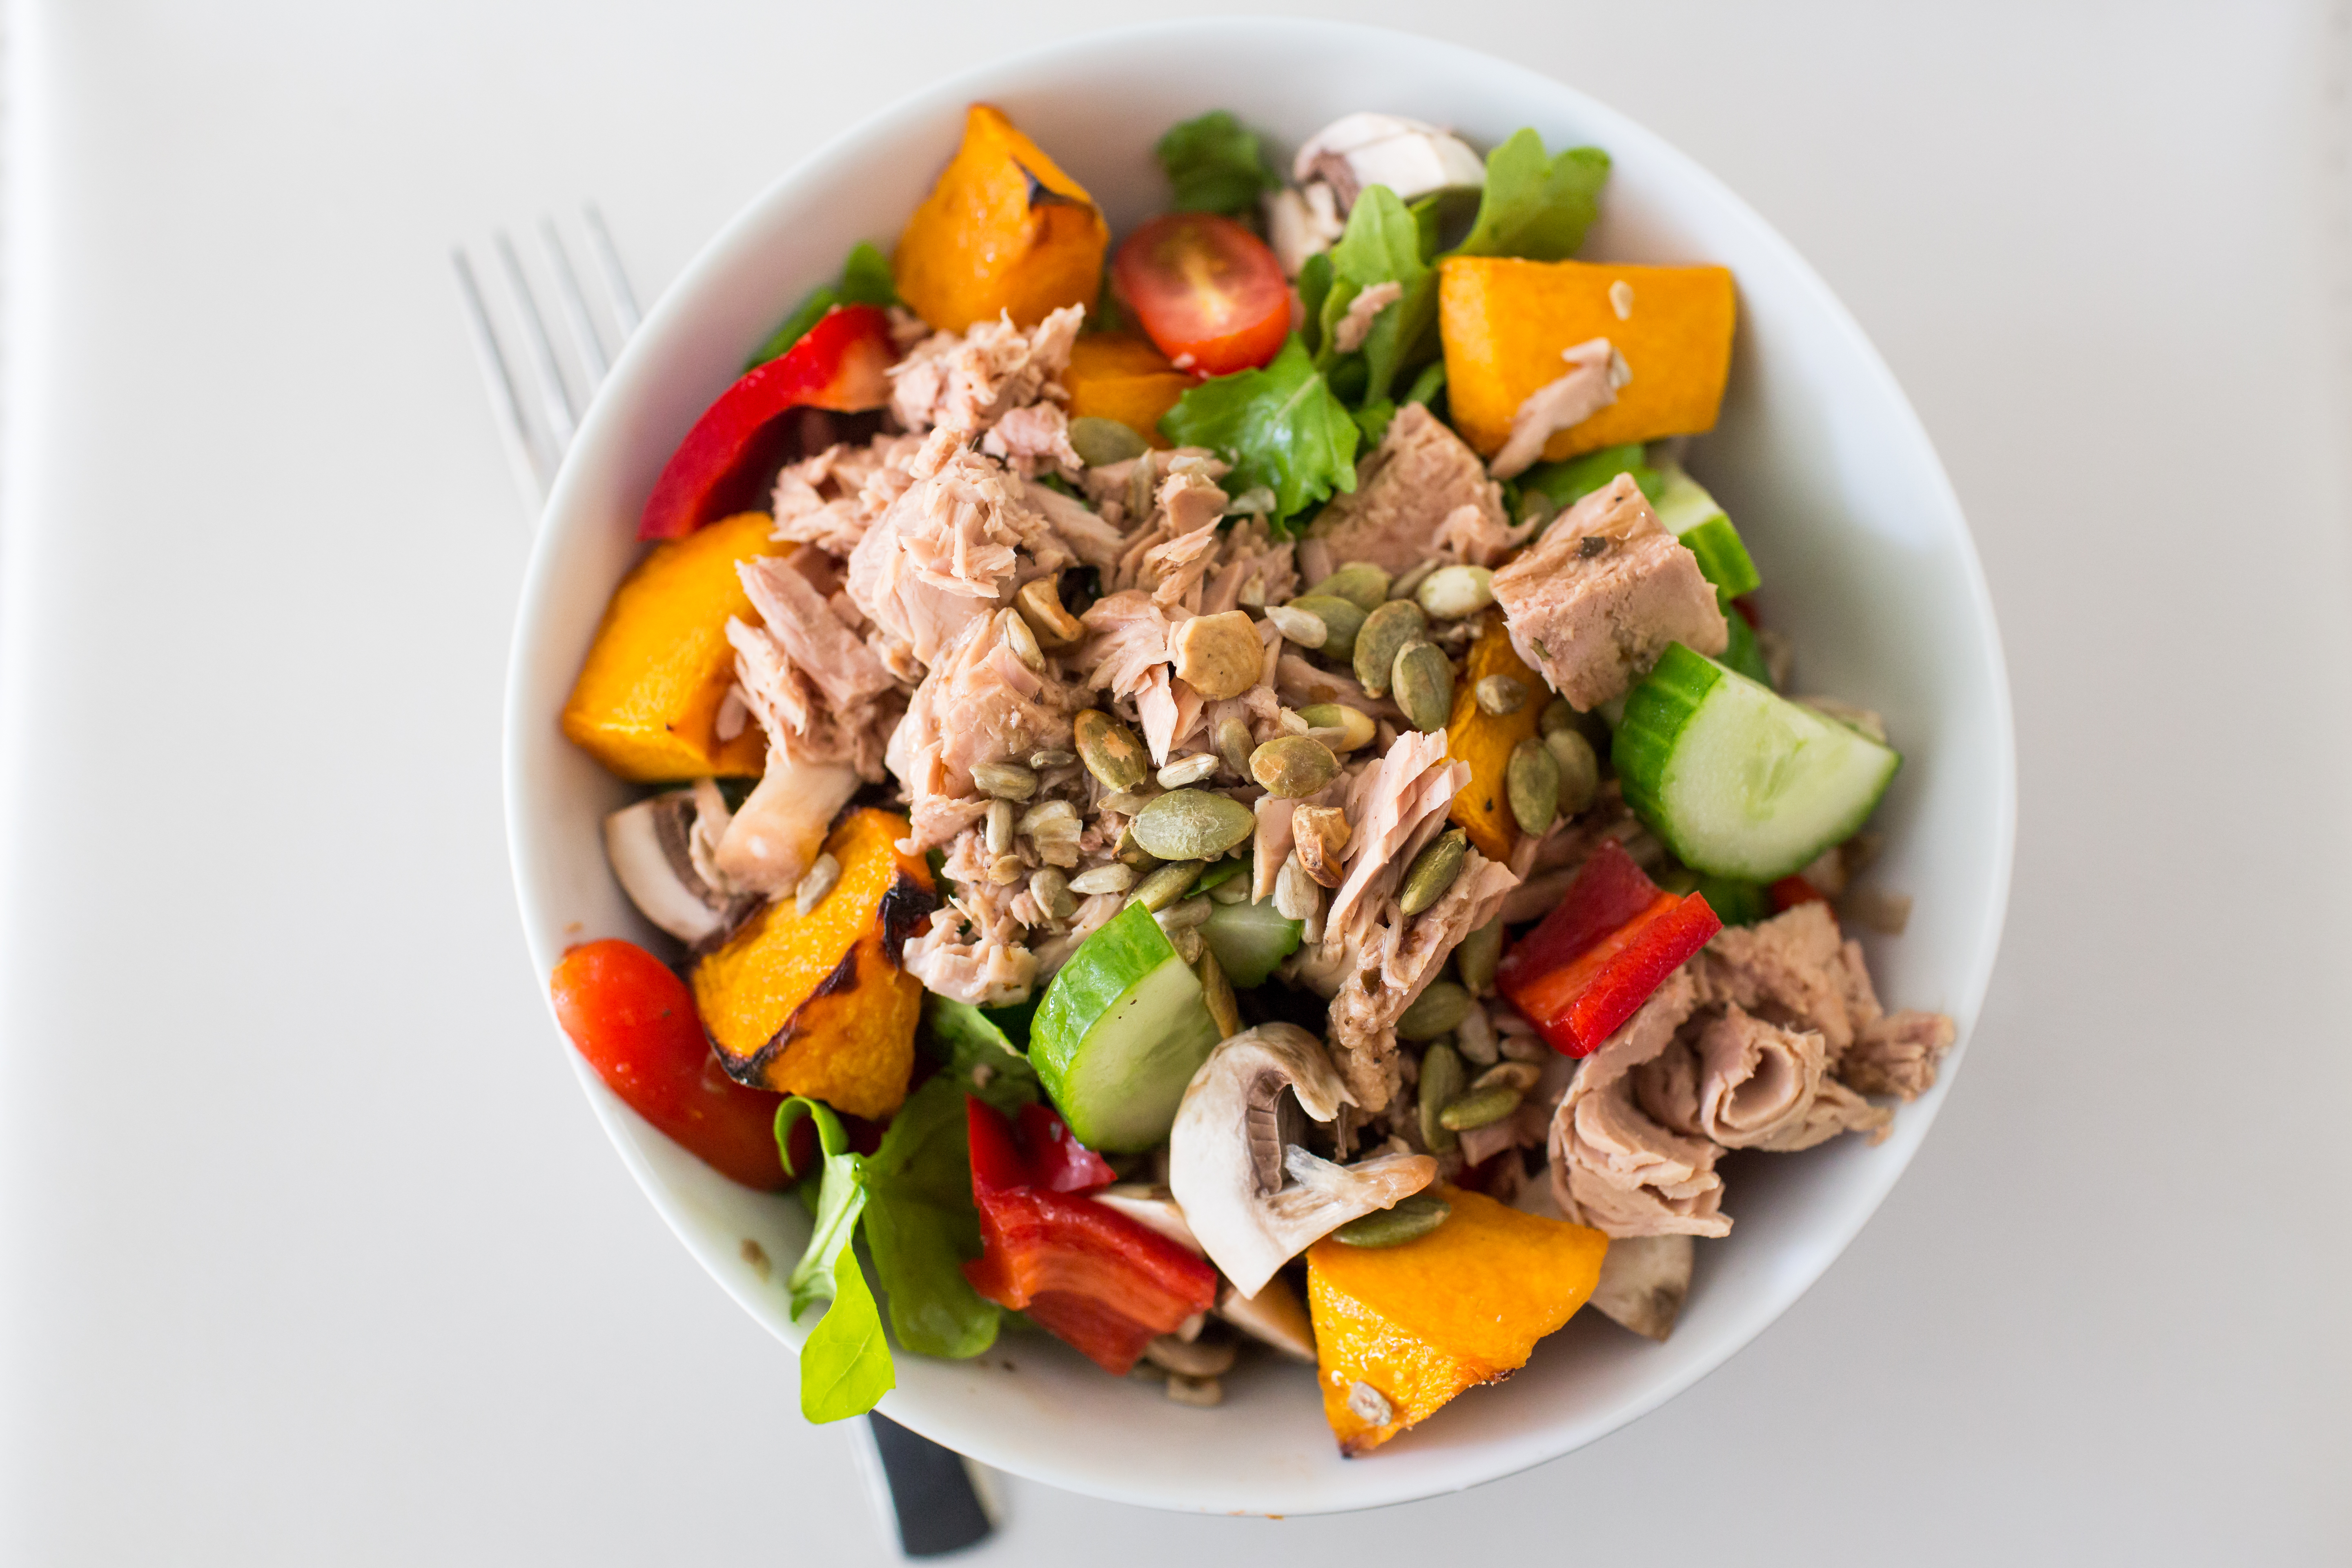 Canned Tuna Getty Images